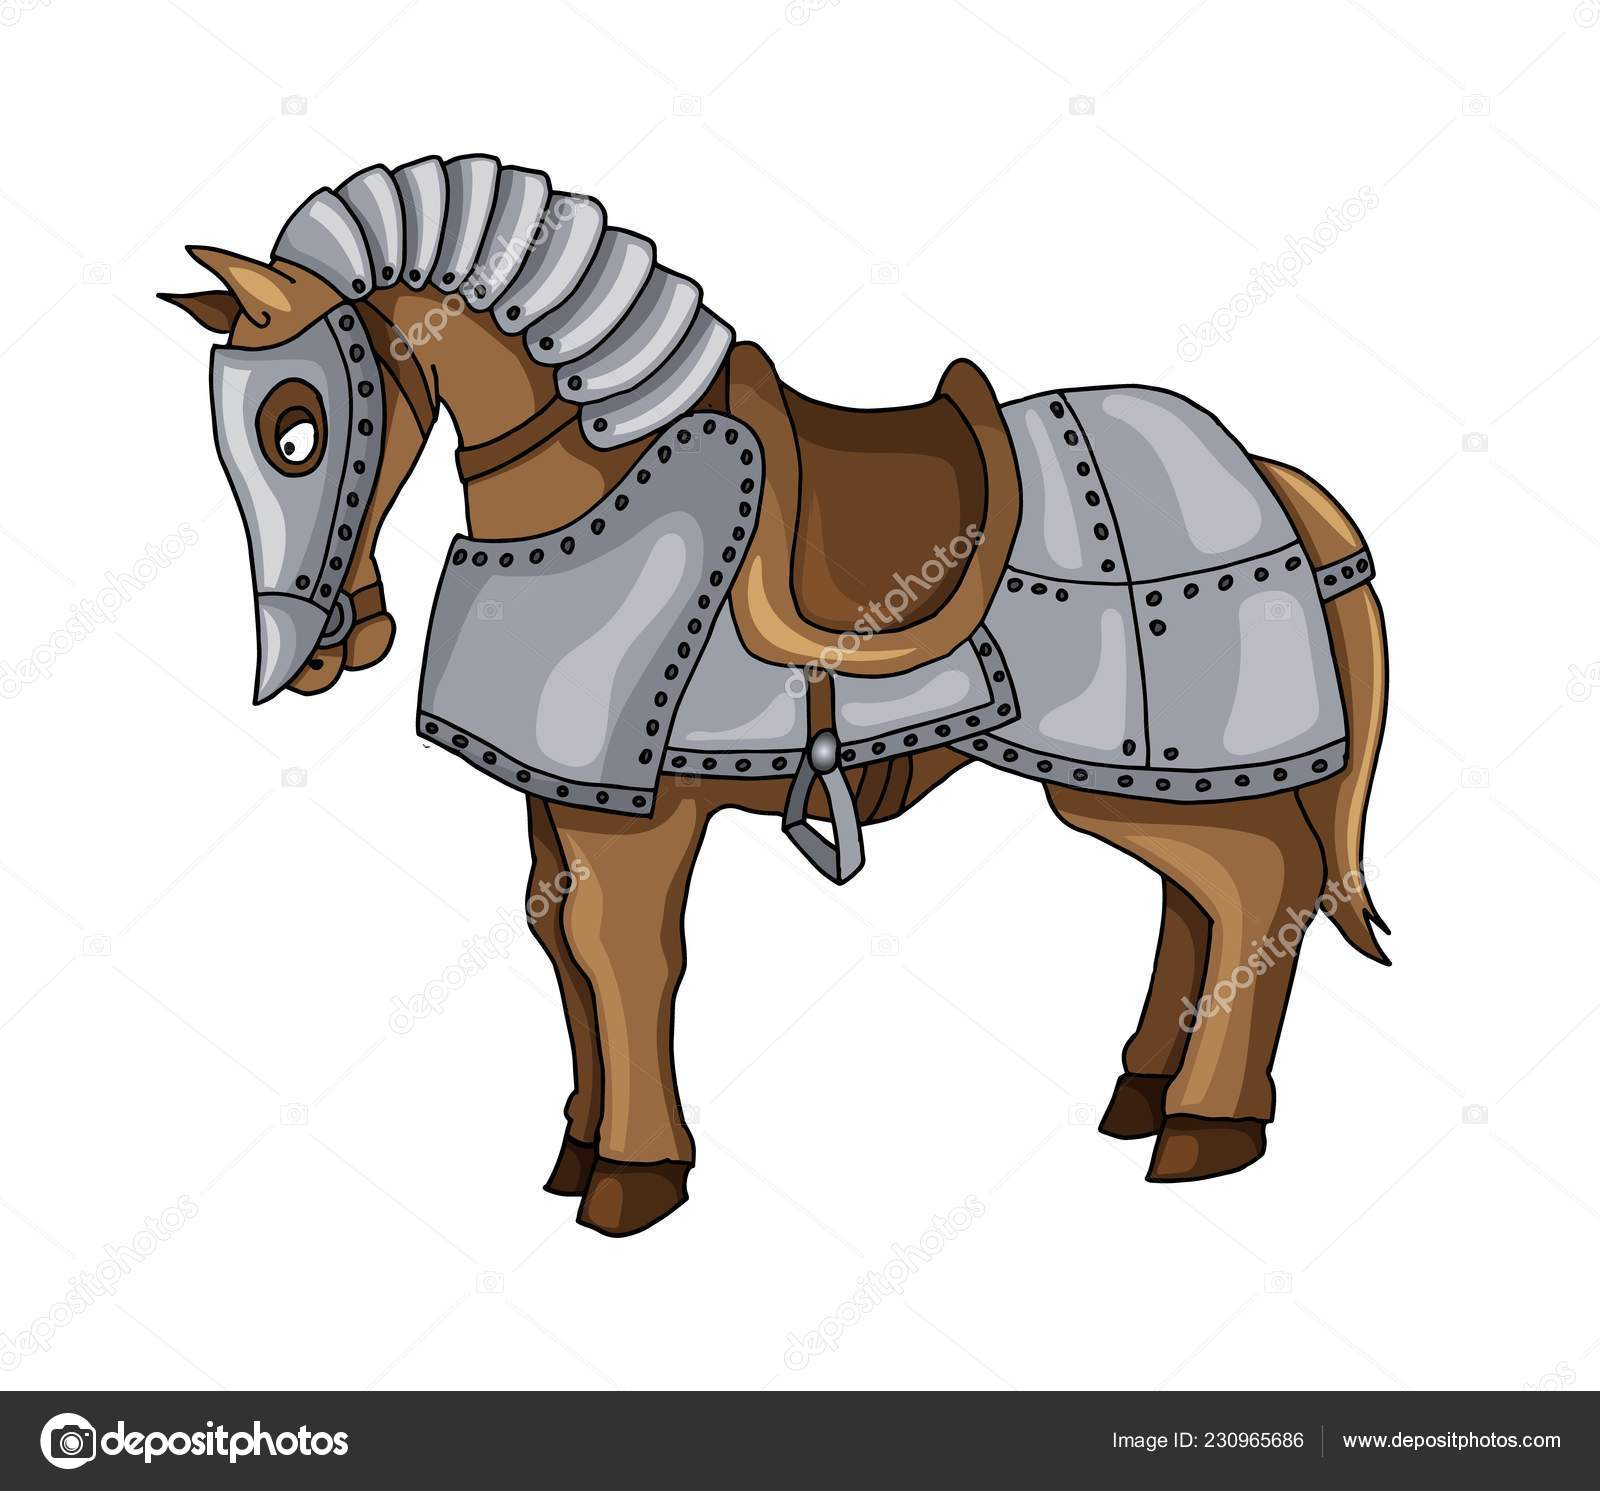 Cartoon Character Of War Horse In Armour Suit Illustration Isolated On White Stock Vector C Archon7th Gmail Com 230965686